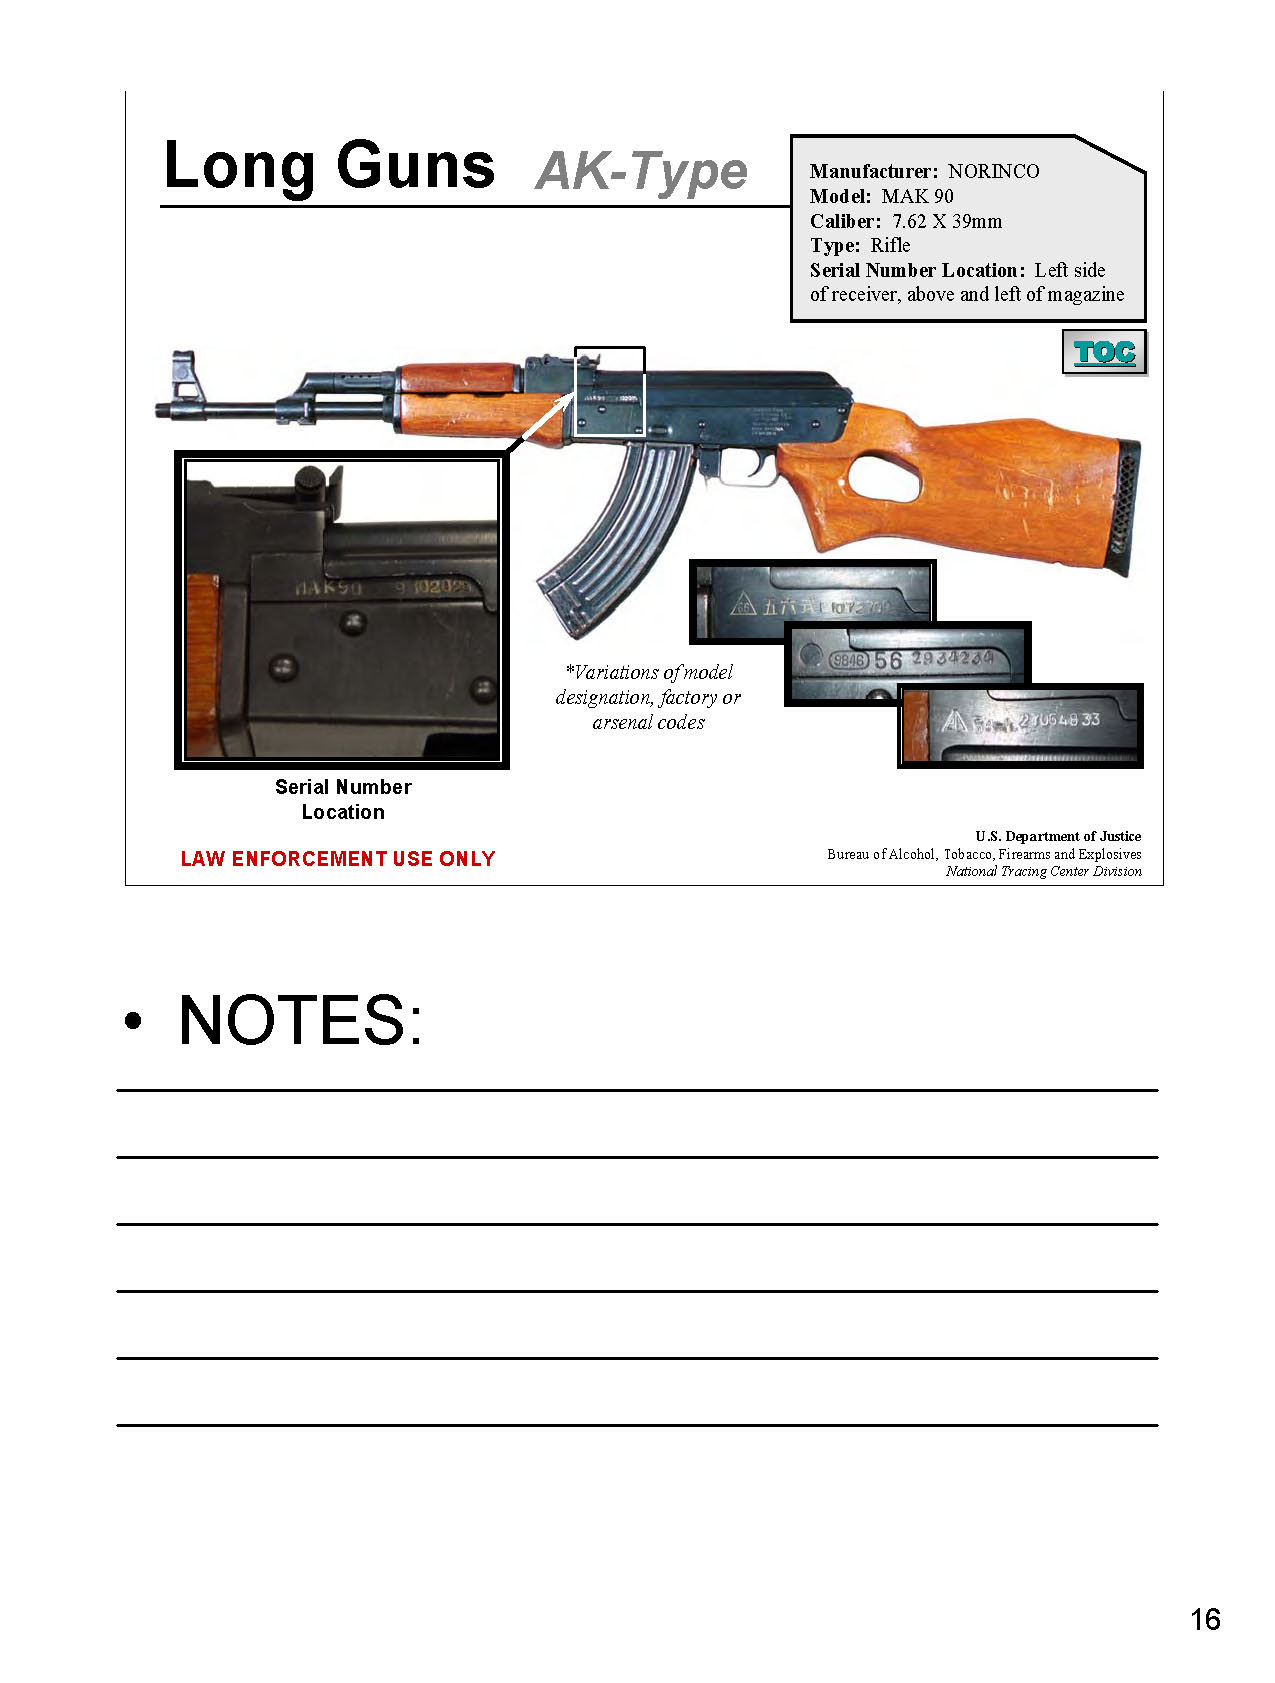 Project Gunrunner: How the ATF Turned On a Confidential Informant